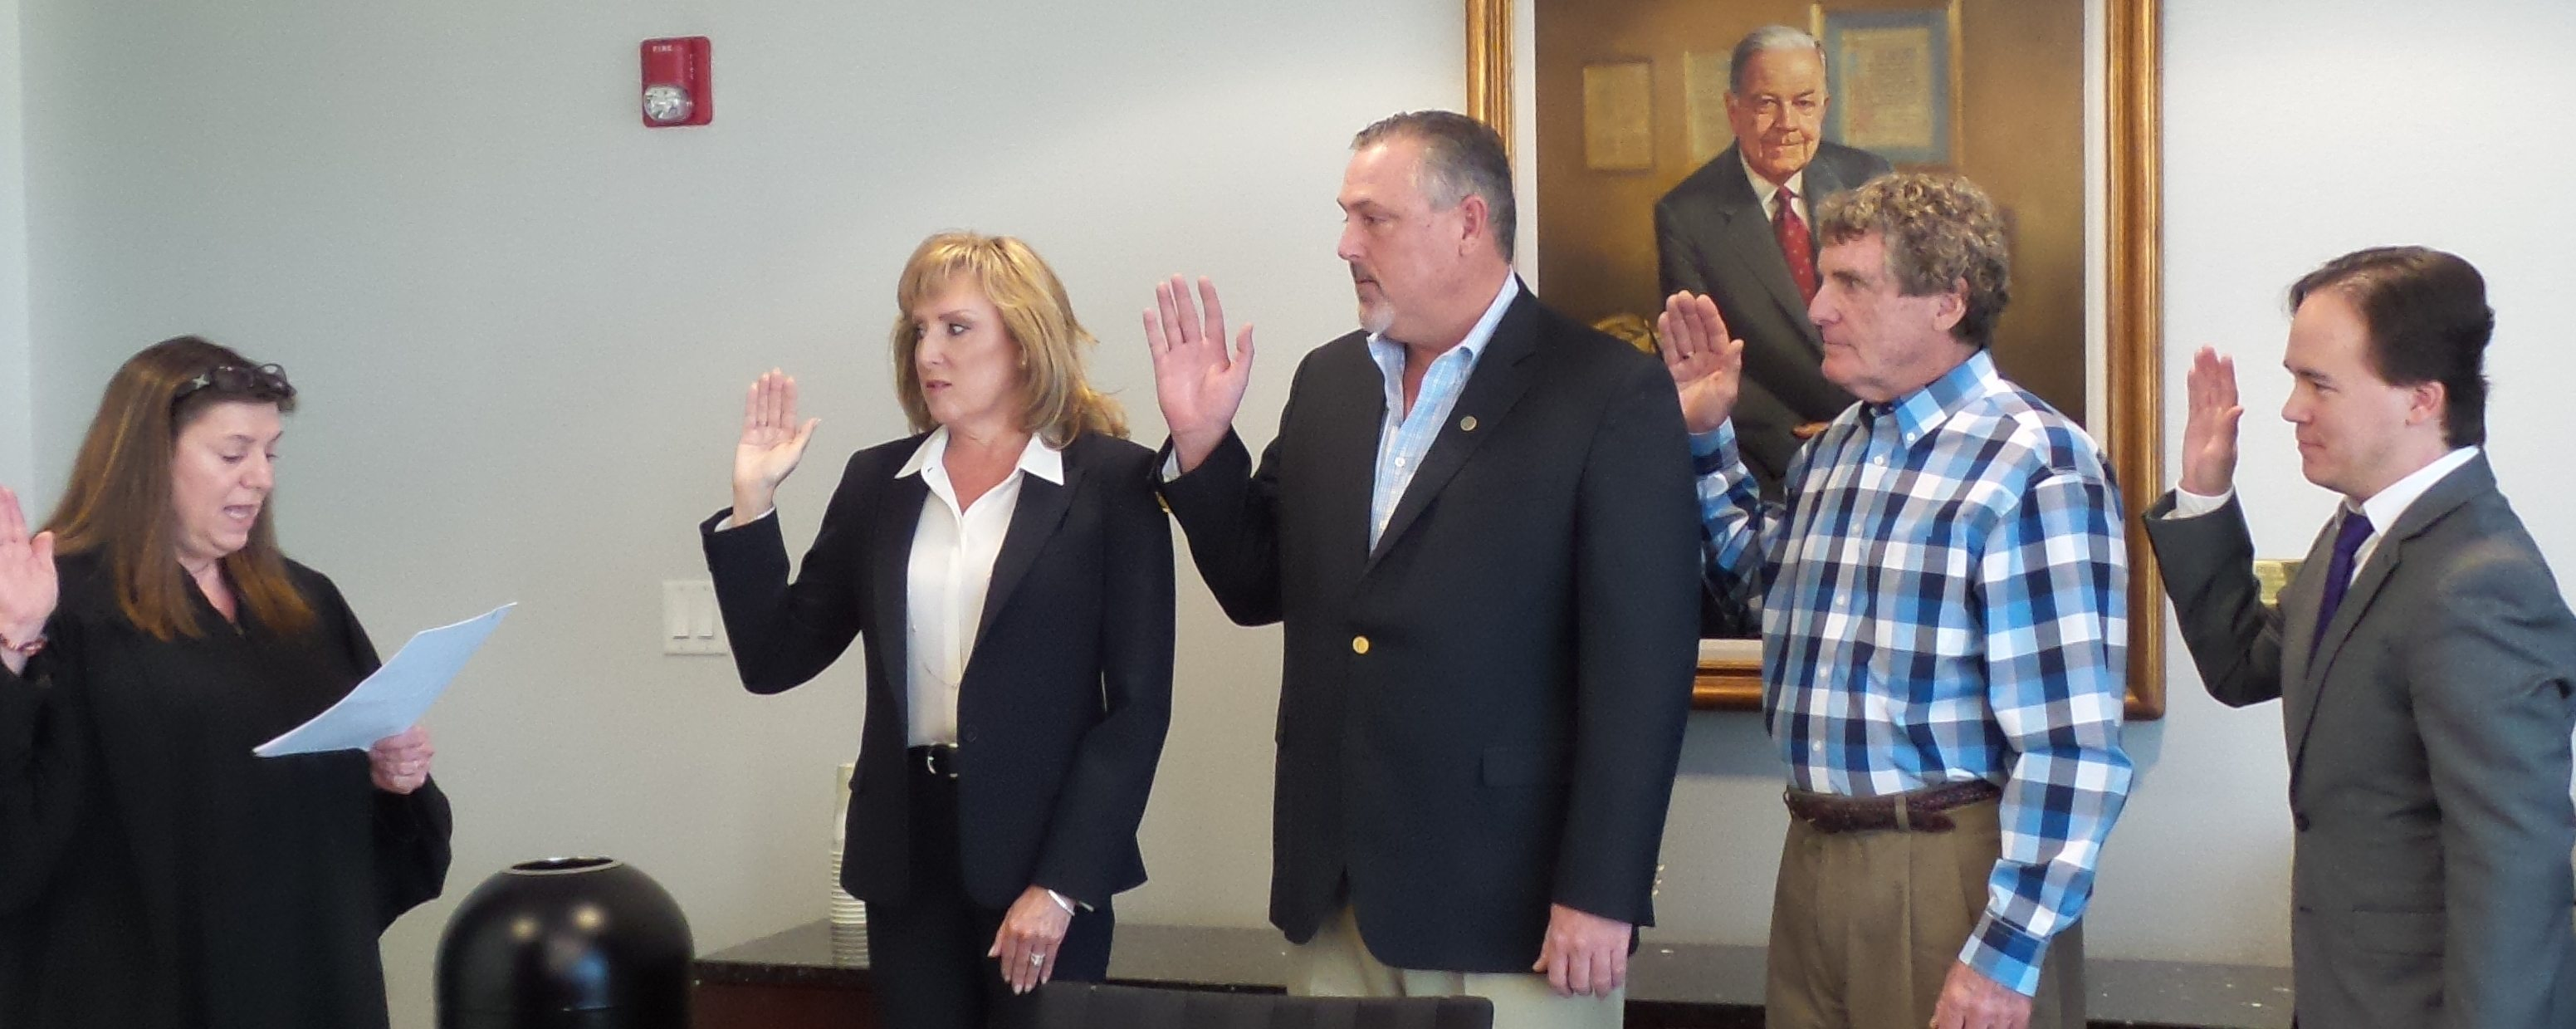 Group being sworn in